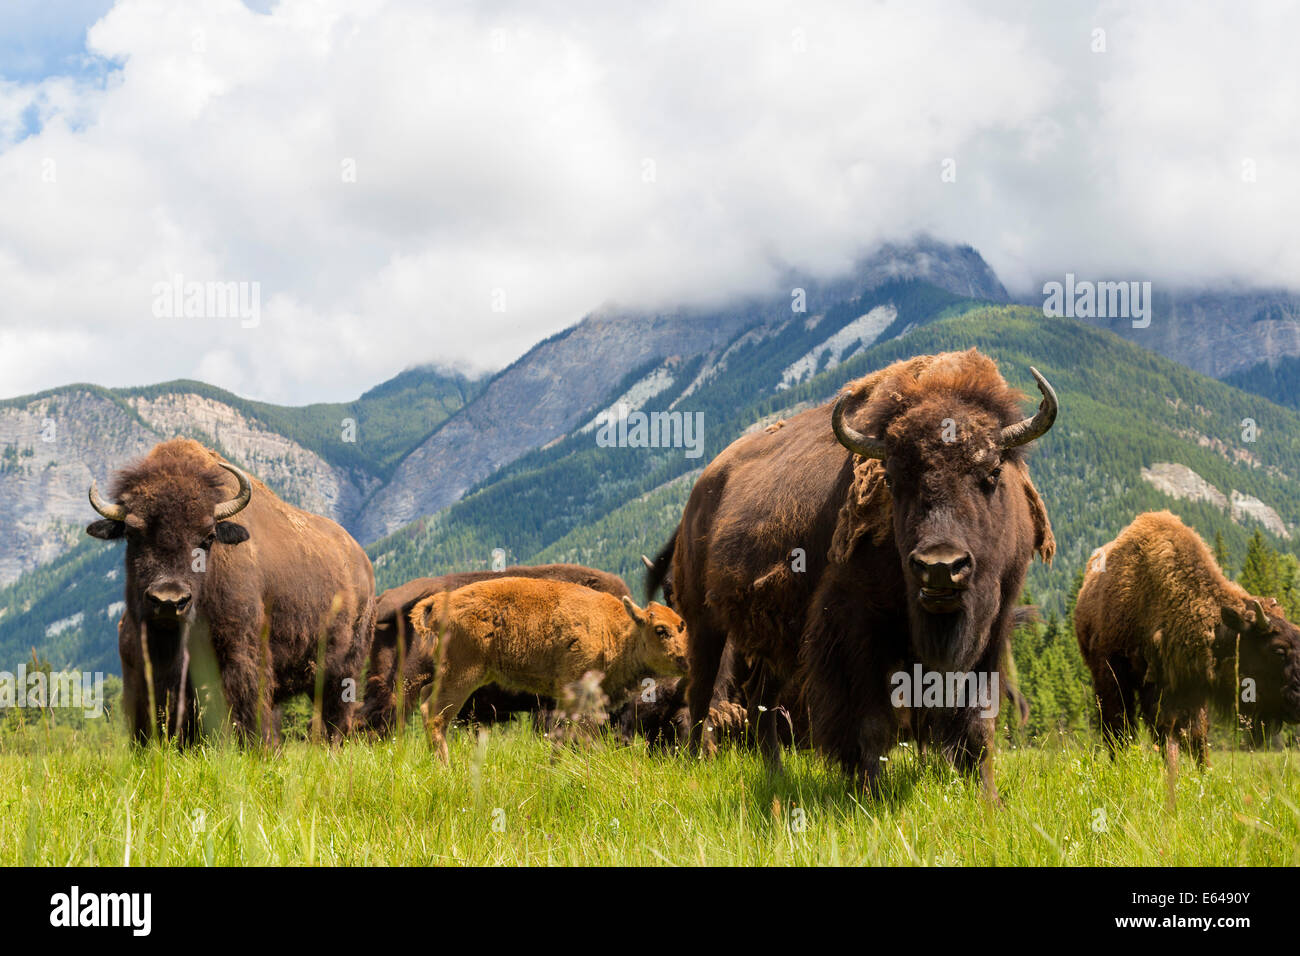 Le bison, Alberta, Canada Photo Stock